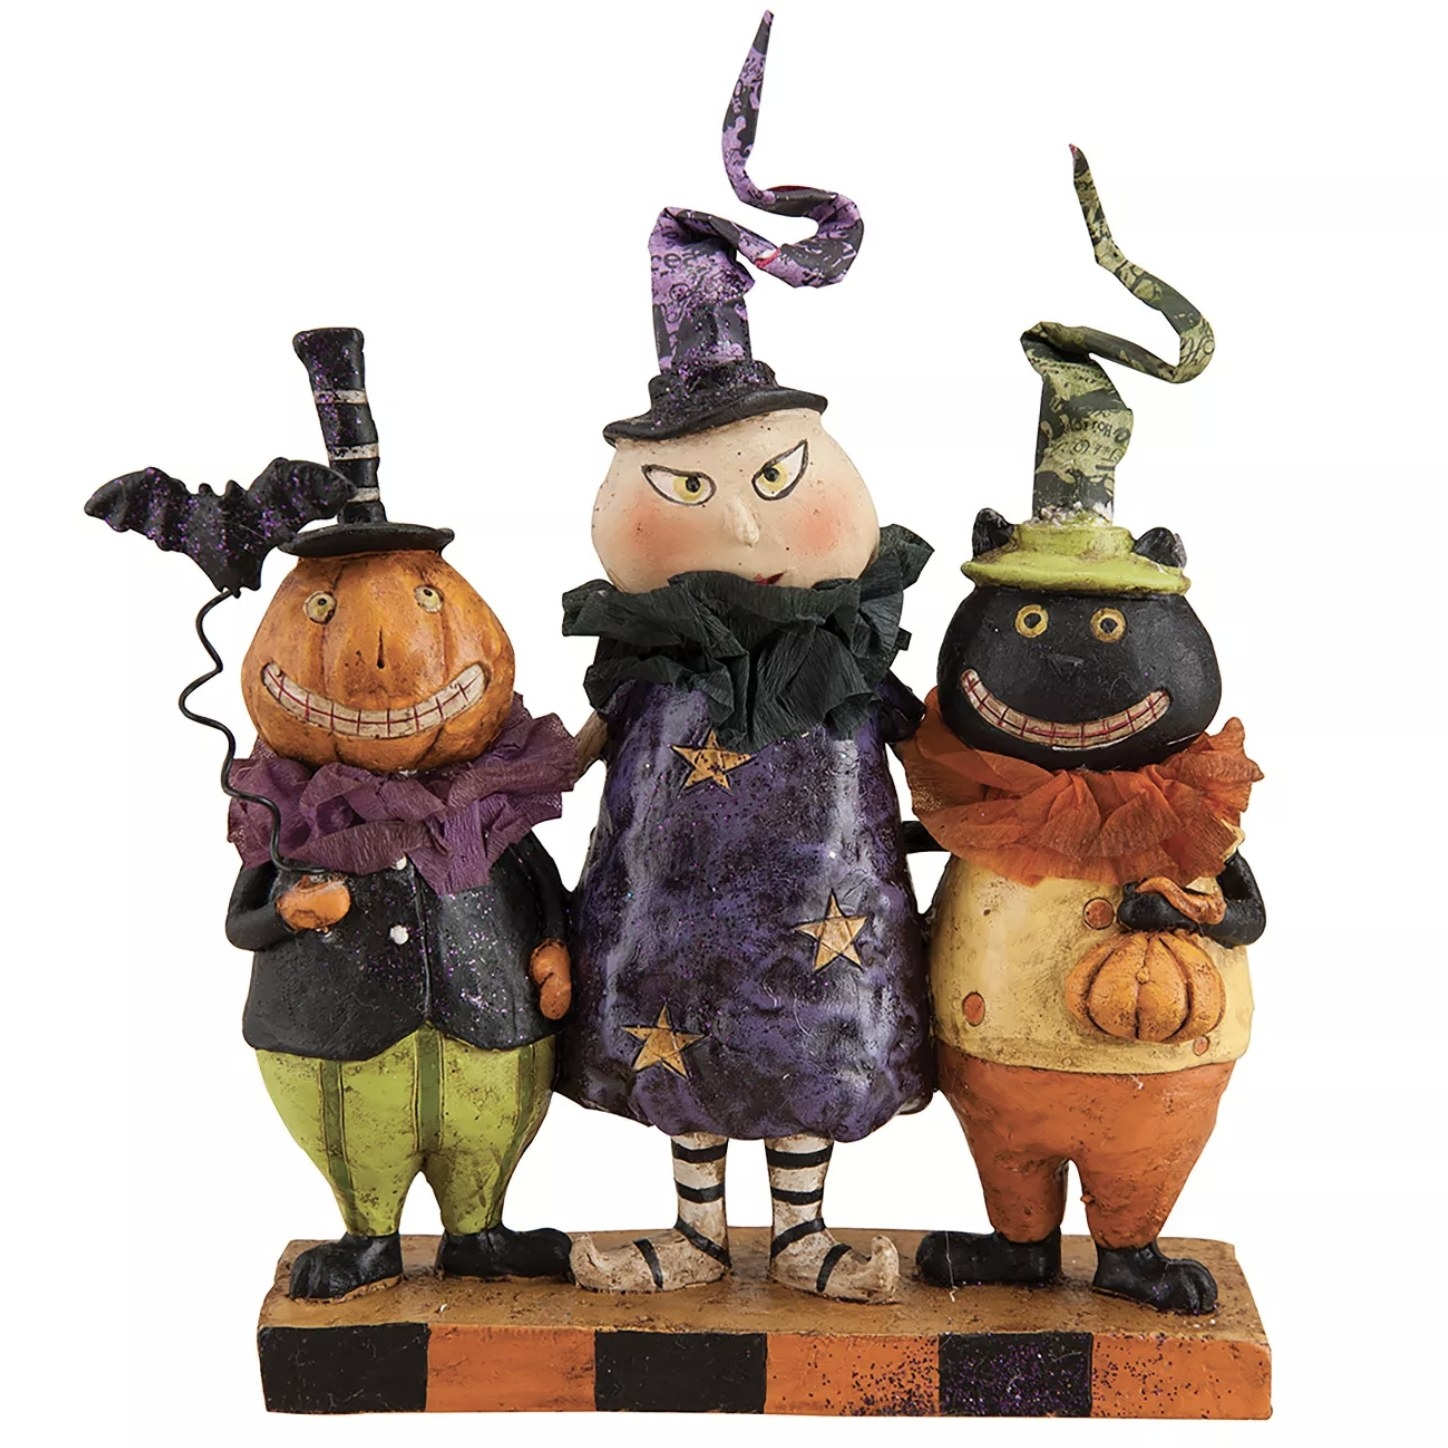 A ceramic figure of three trick or treaters with quirky hats and outfits